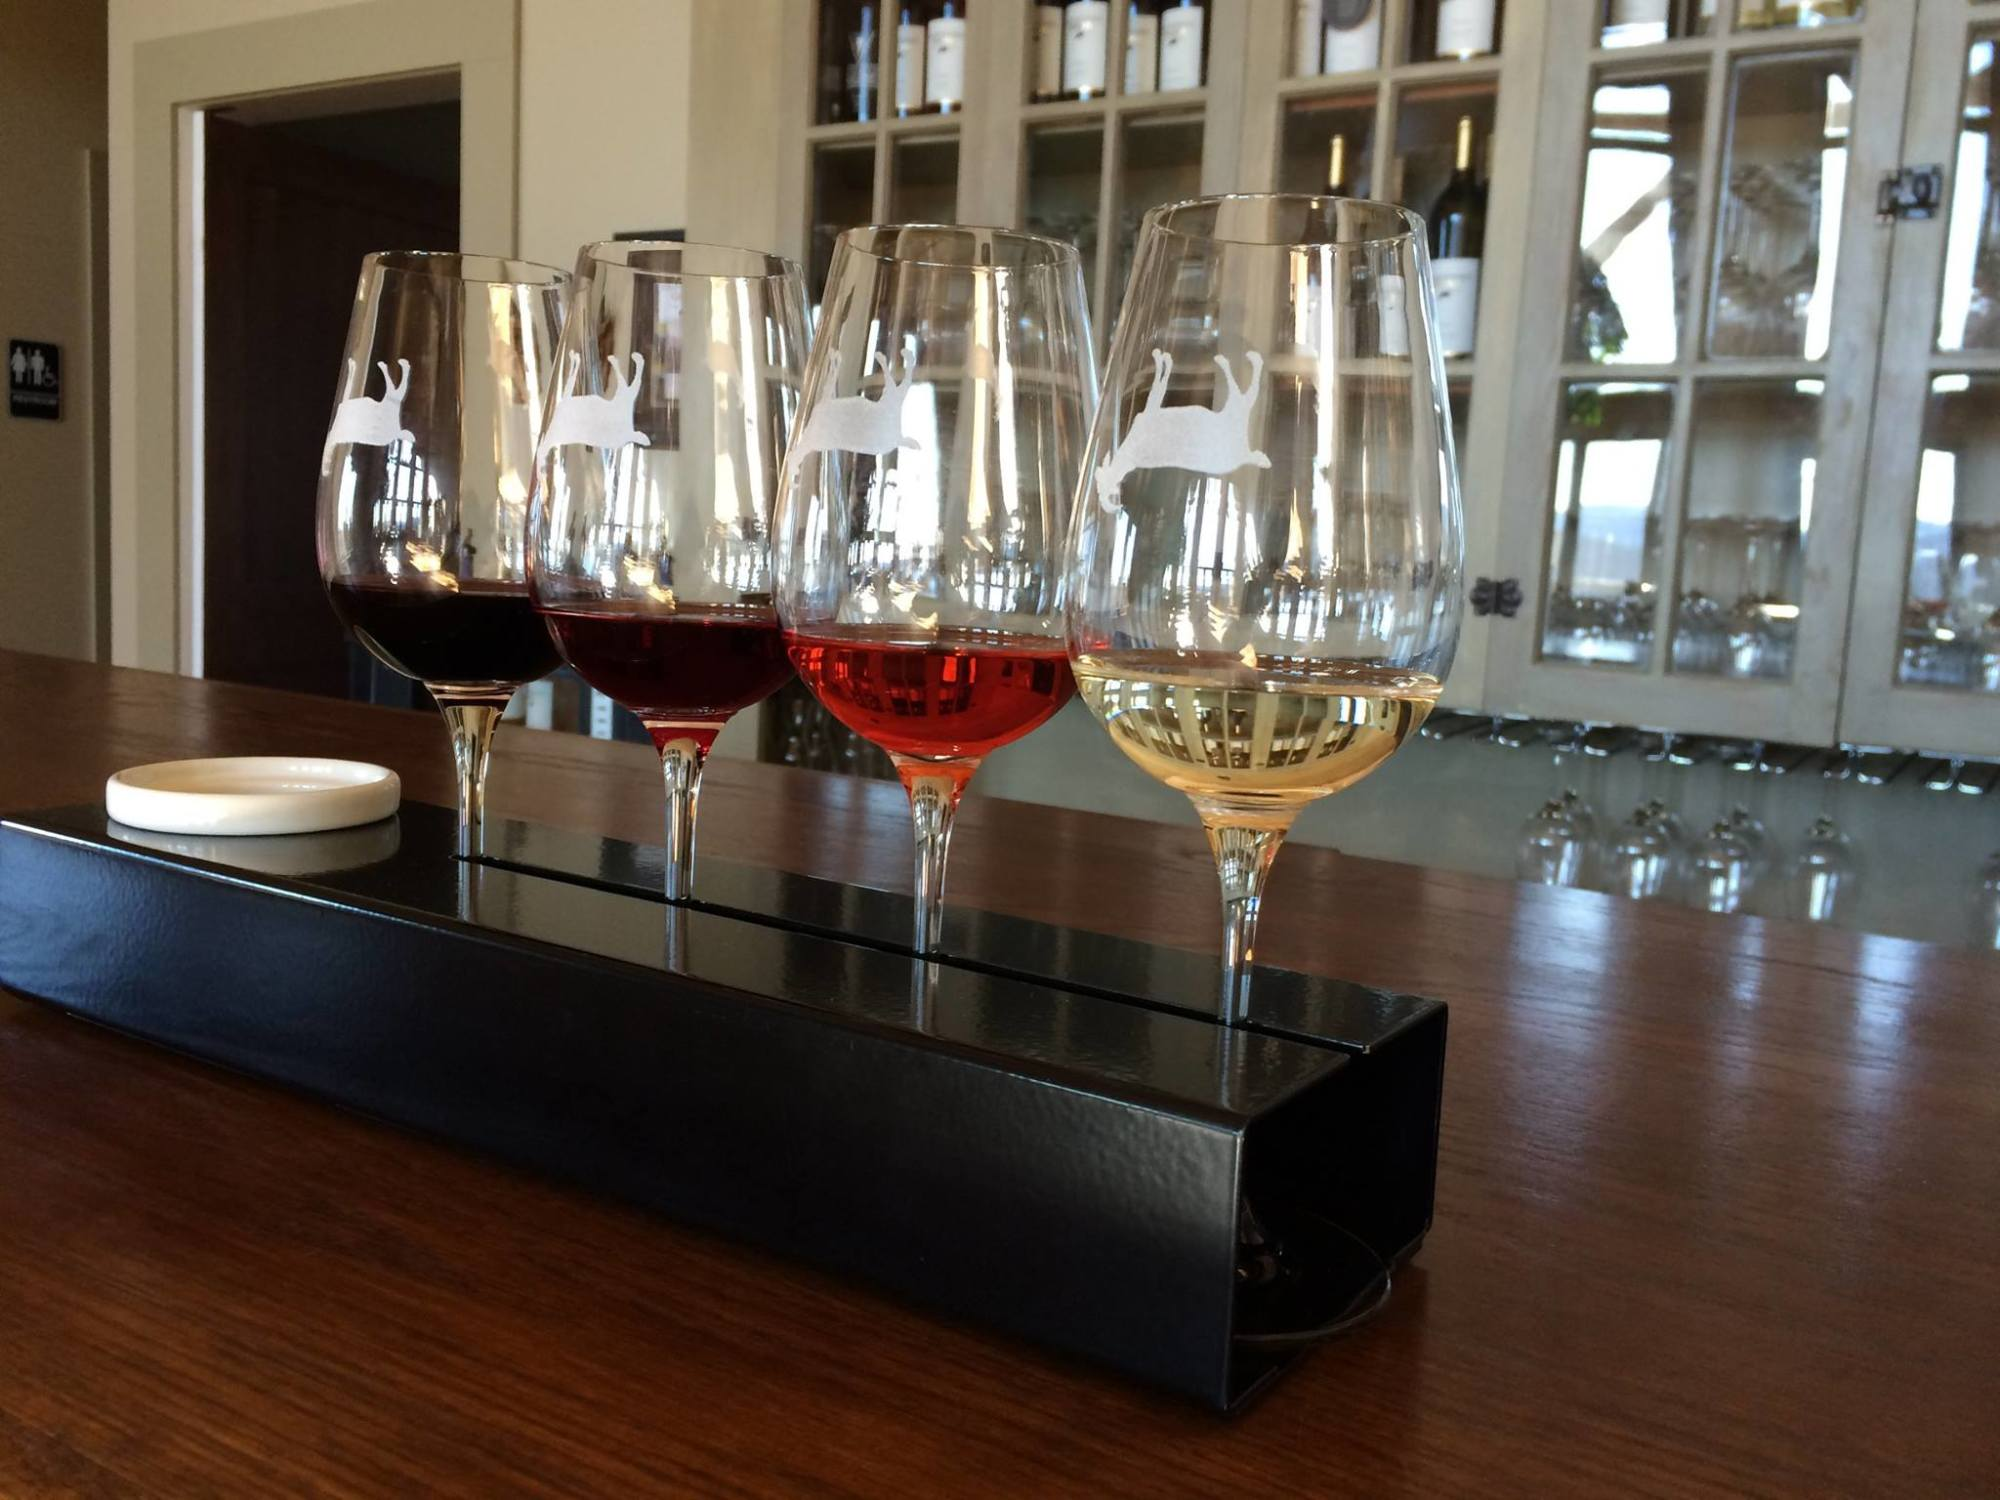 Fainting Goat Vineyards and Winery